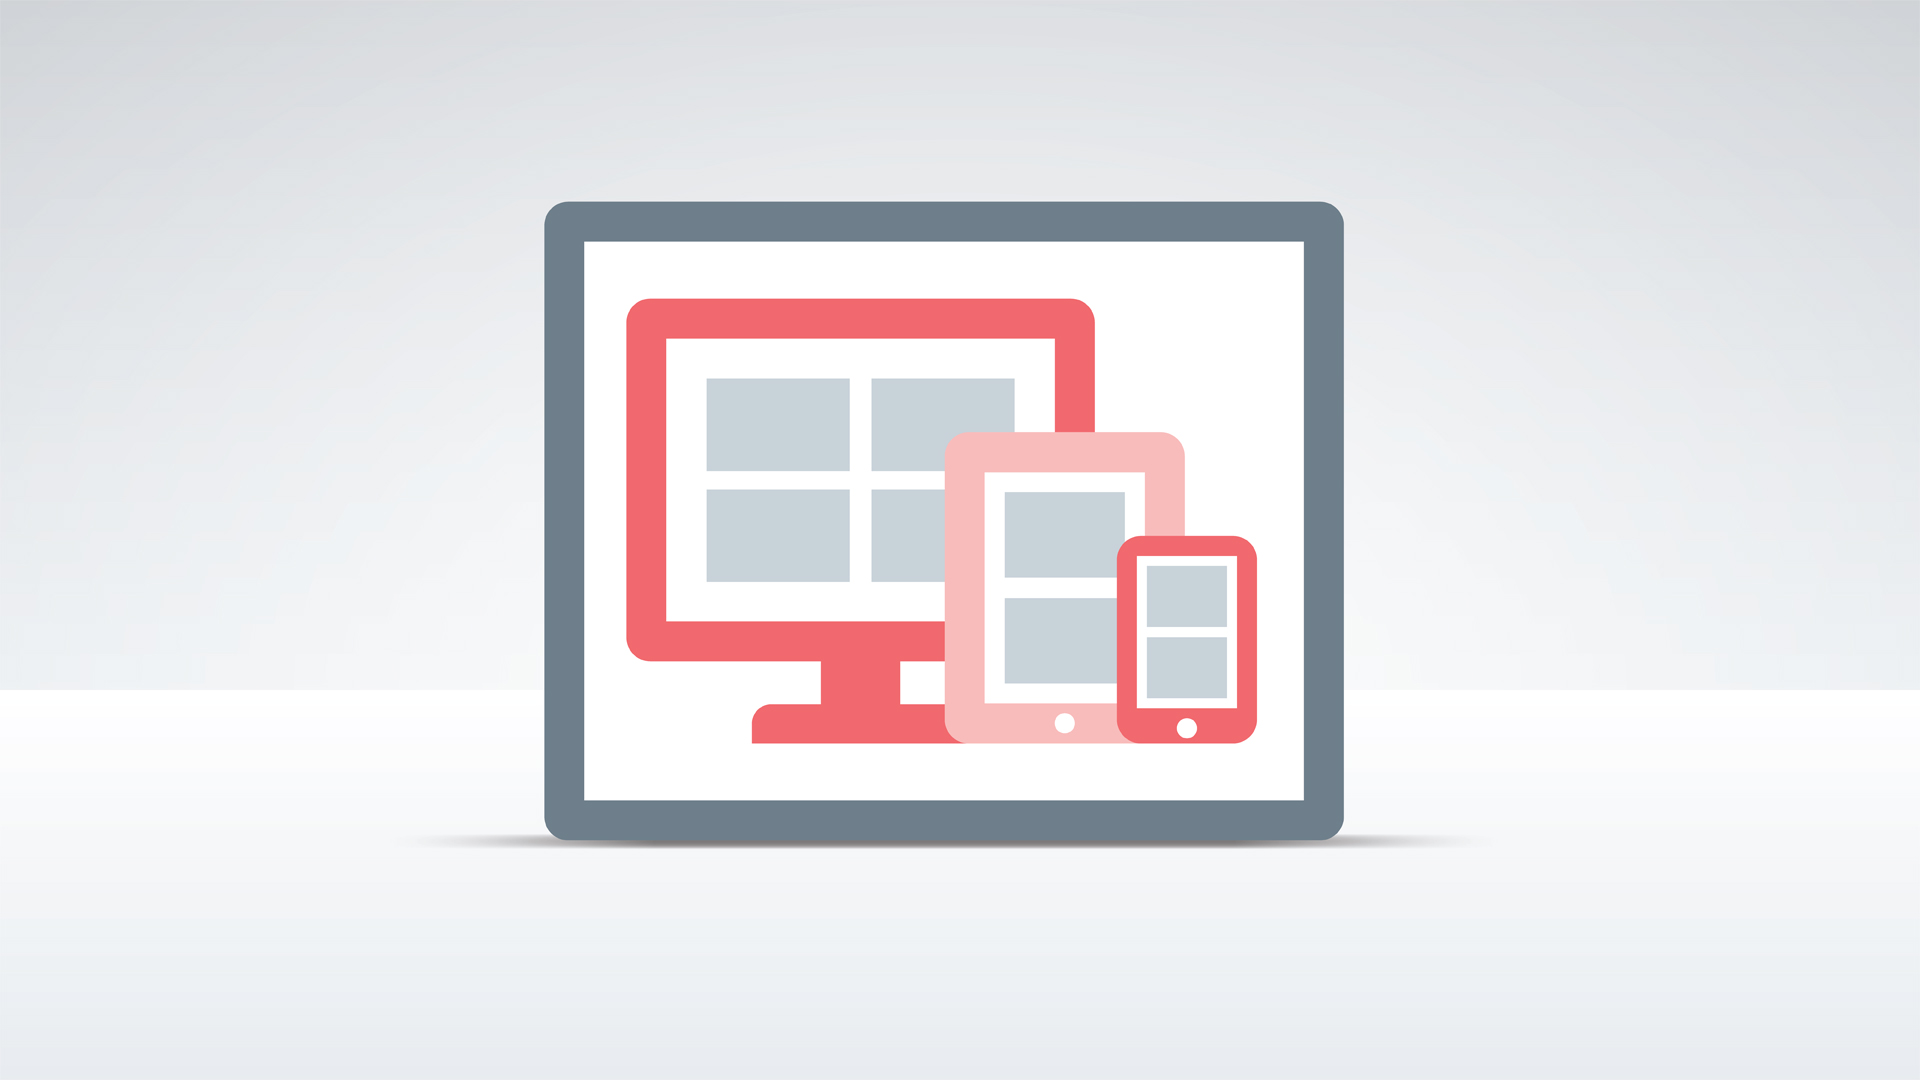 Terms and technology we'll be covering: Creating a Responsive Web Design